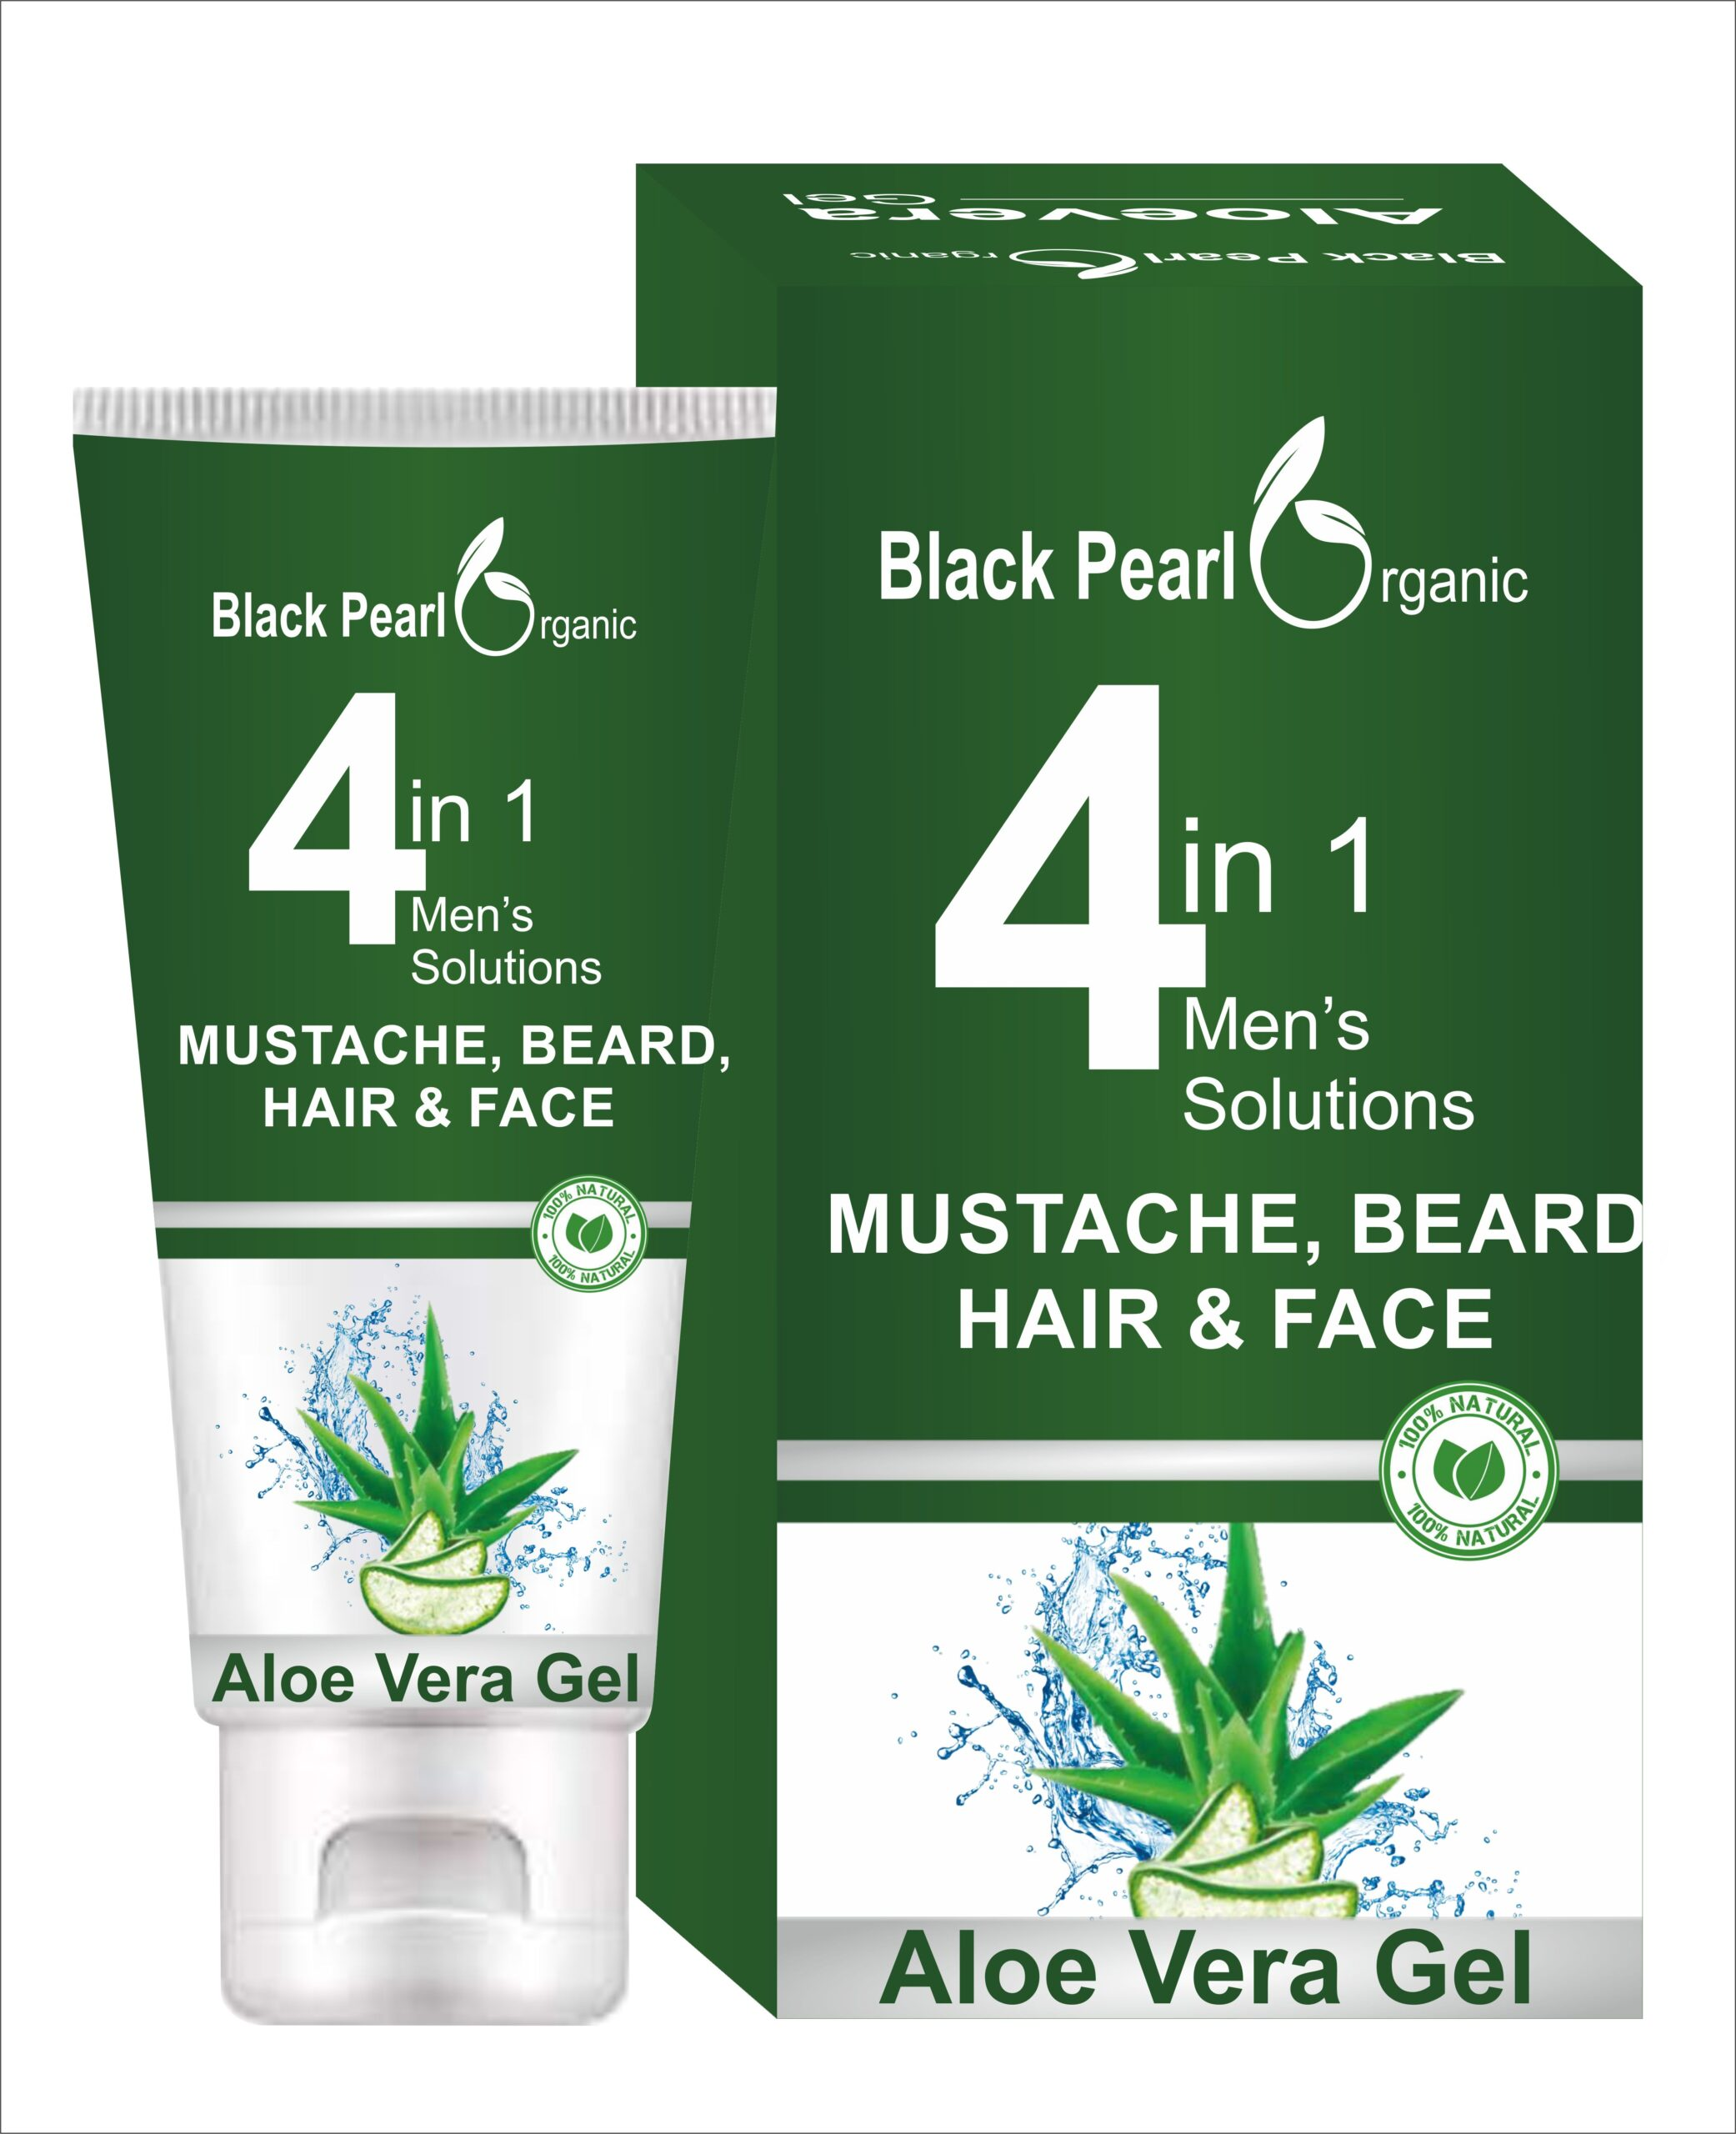 MUSCTACHE BEARD FACE ALOEVERA GEL